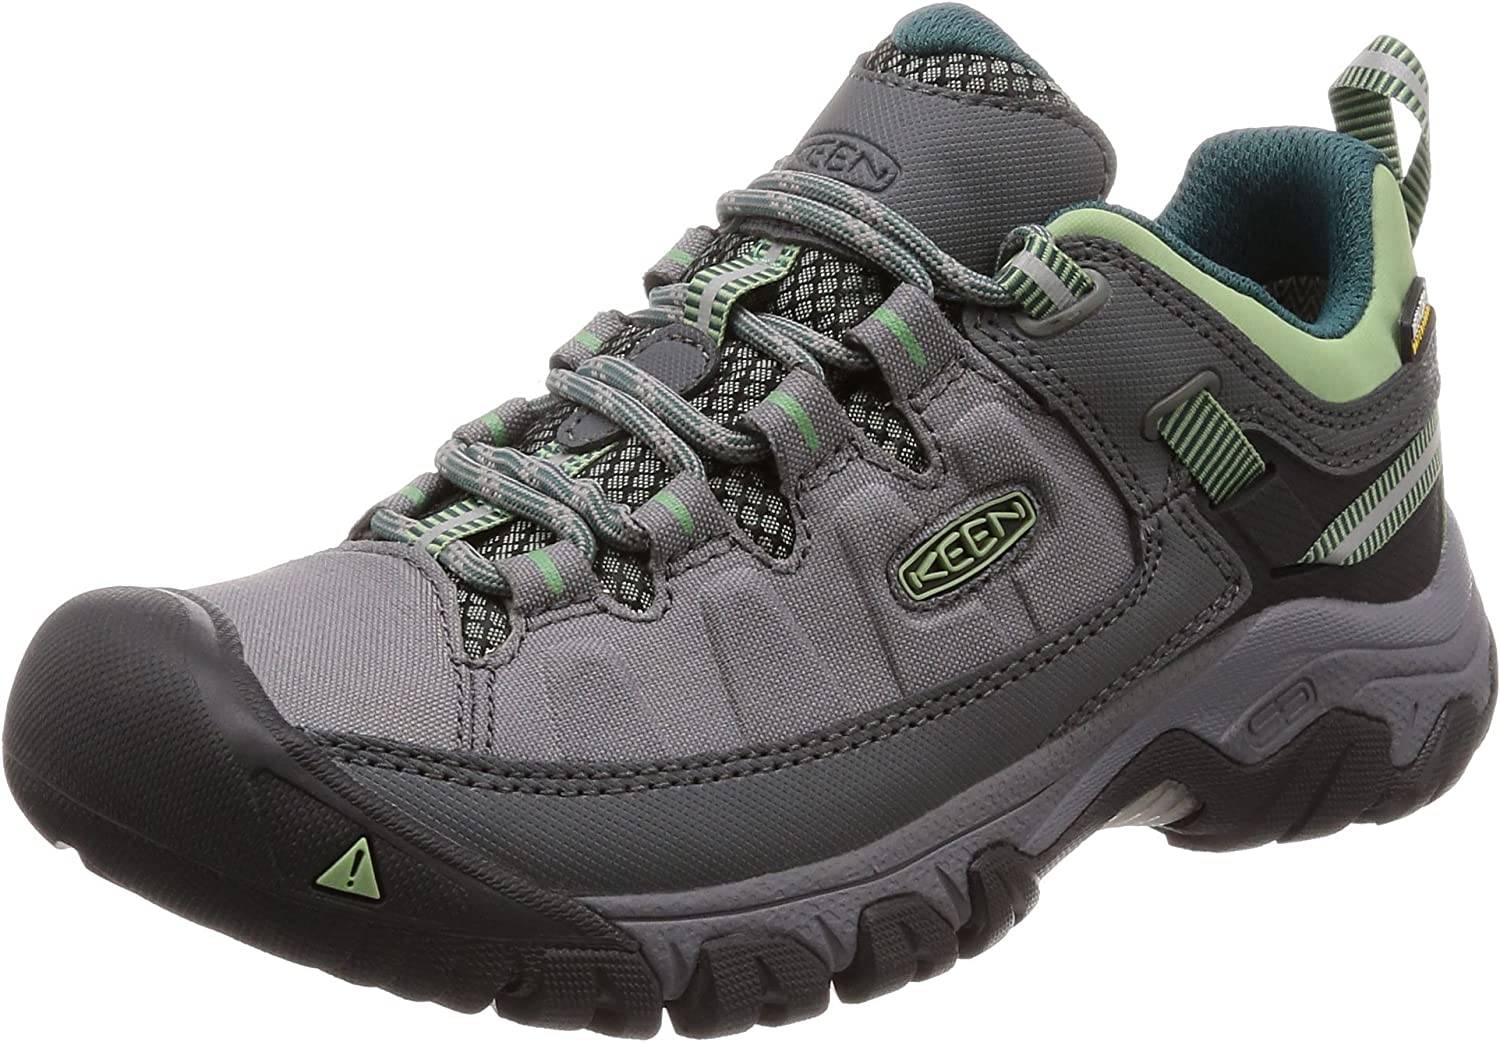 Targhee Exp Wp Low Rise Hiking Shoes